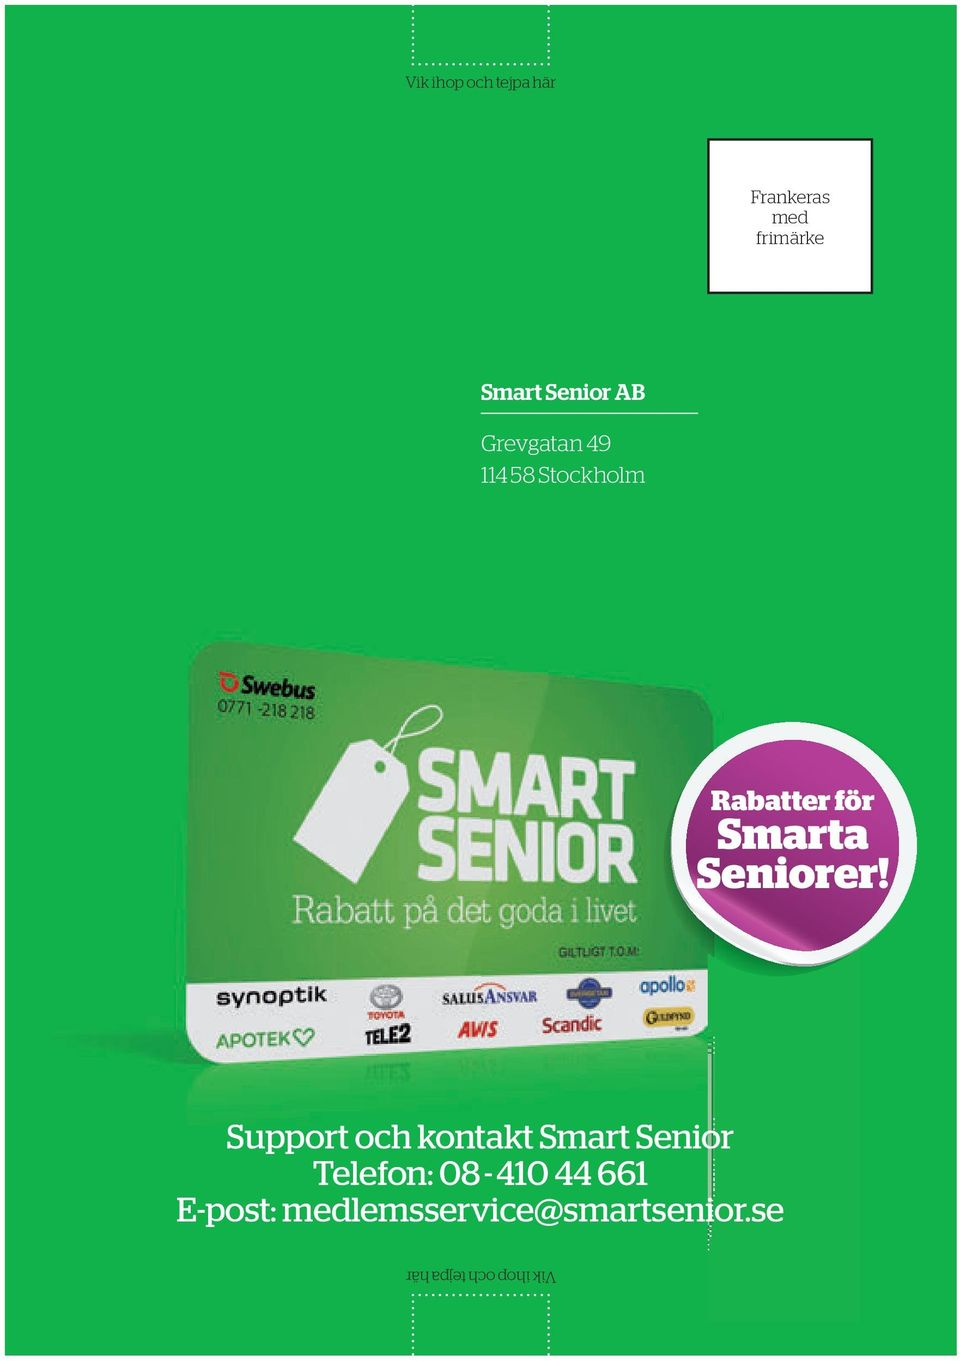 Support och kontakt Smart Senior Telefon: 08-410 44 661 E-post: